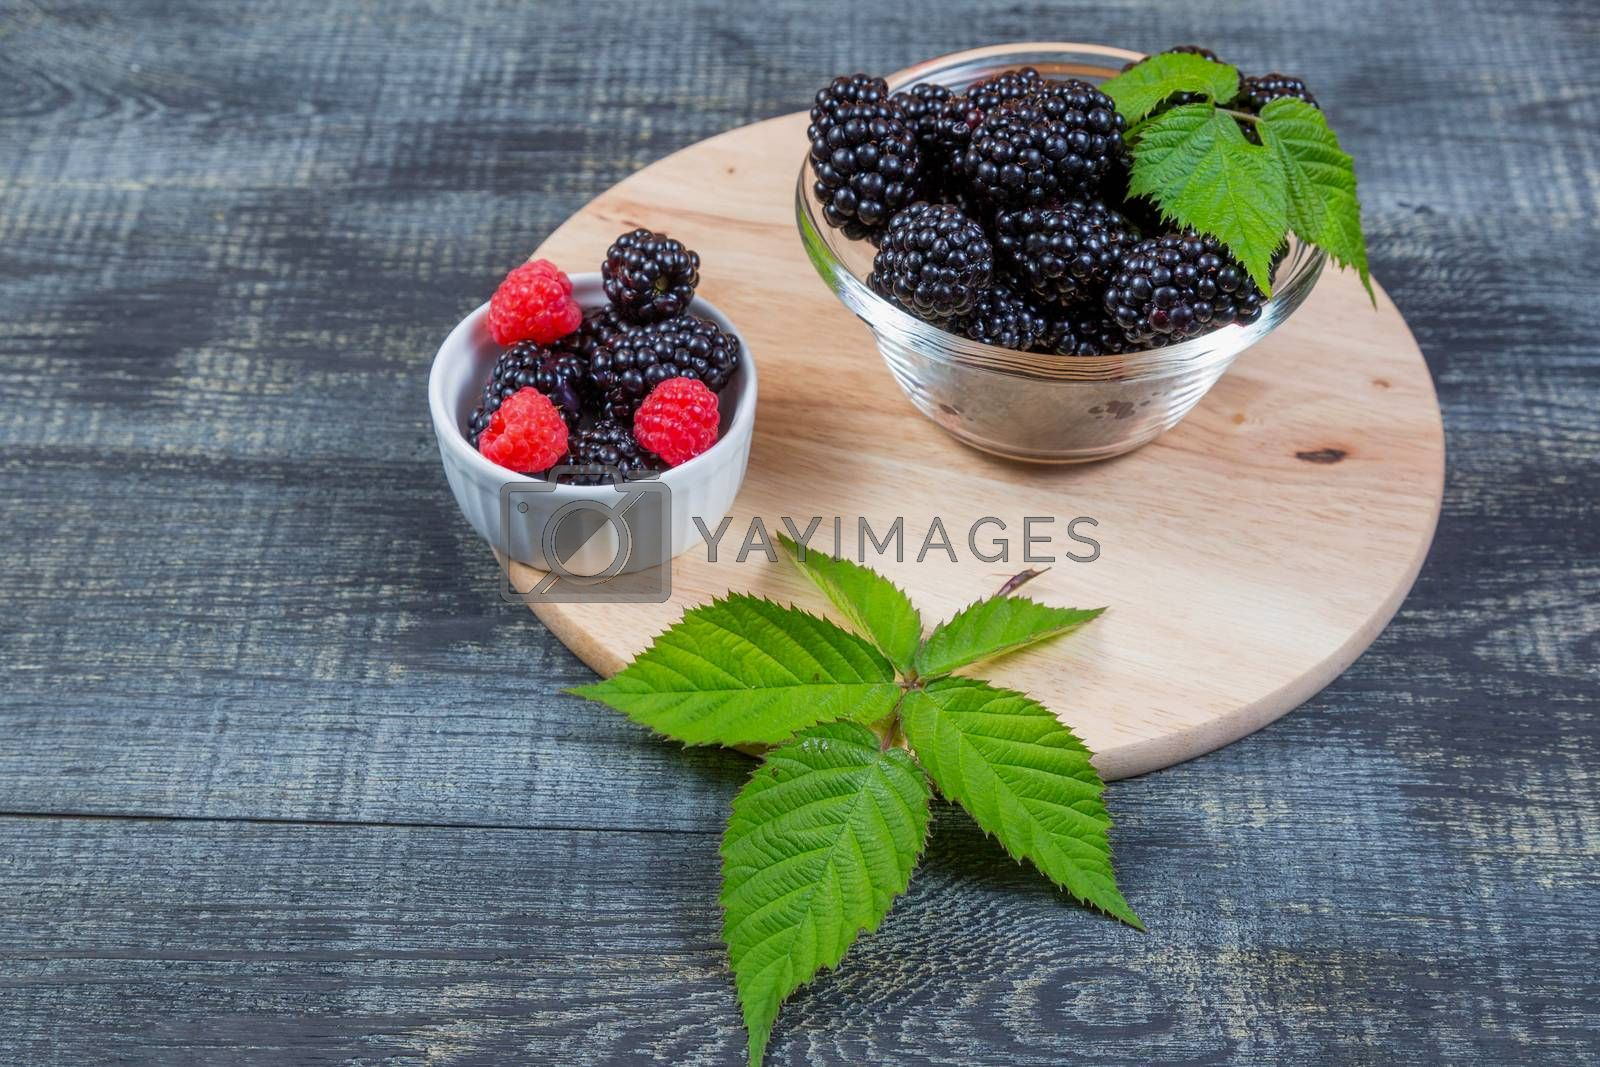 ripe blackberry with leaves on a wooden cutting board in a glass bowl on dark blue wooden background.